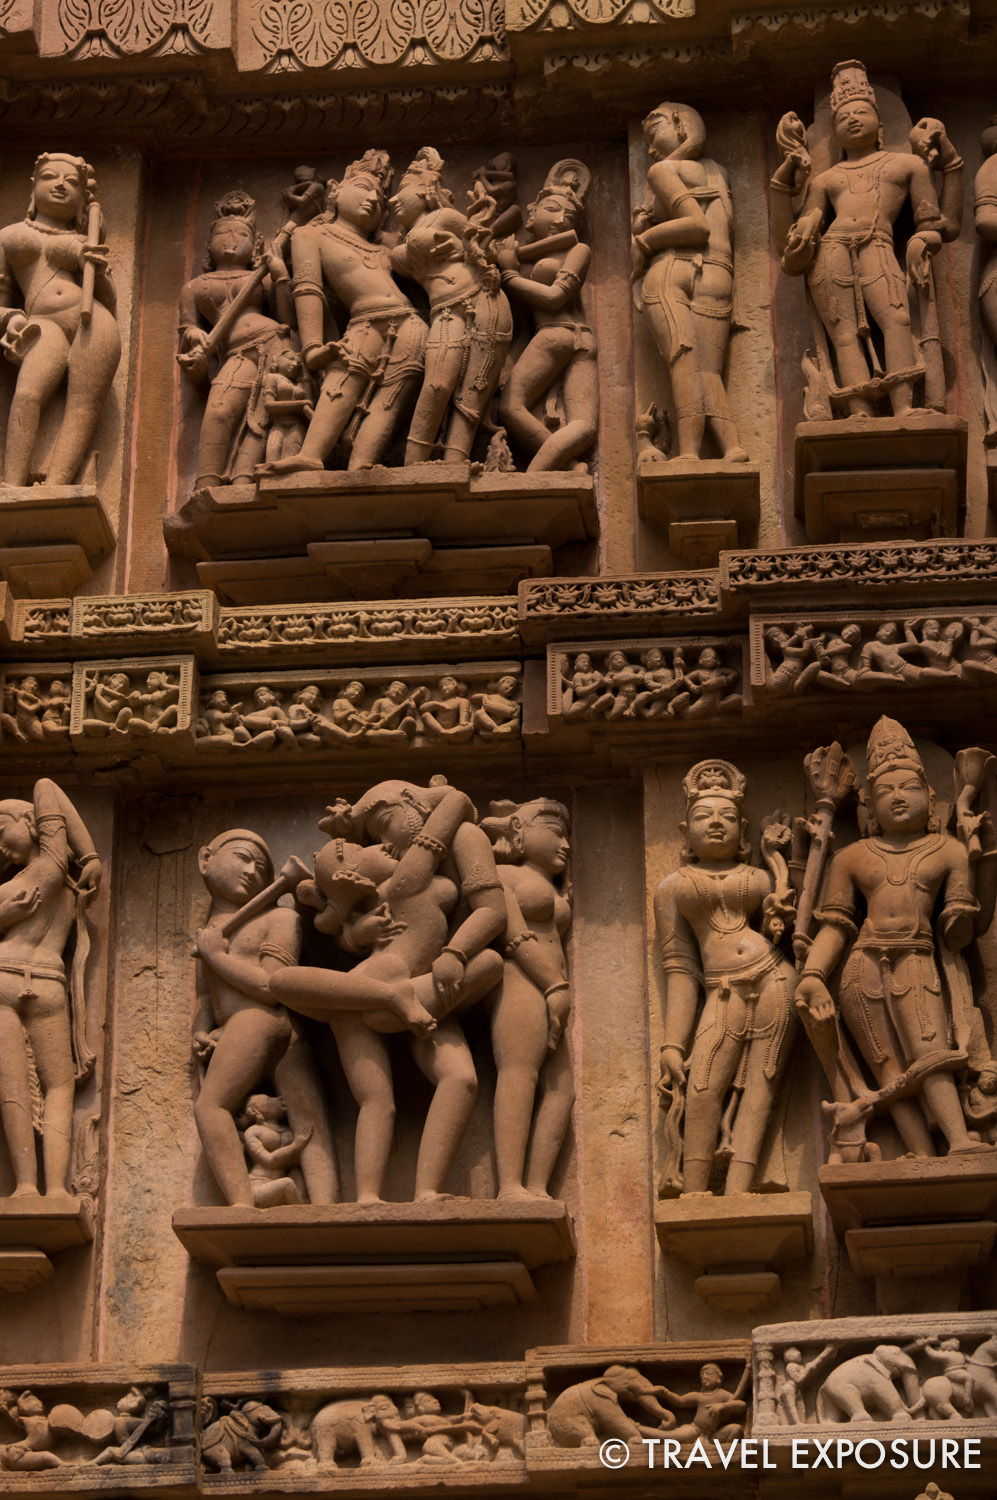 The  Hindu and Jain  temples at Khajuraho. Most werebuilt between 950 and 1050. They are beautifully  decorated  and  famous for their erotic sculptures depicting scenes from the Kama Sutra.